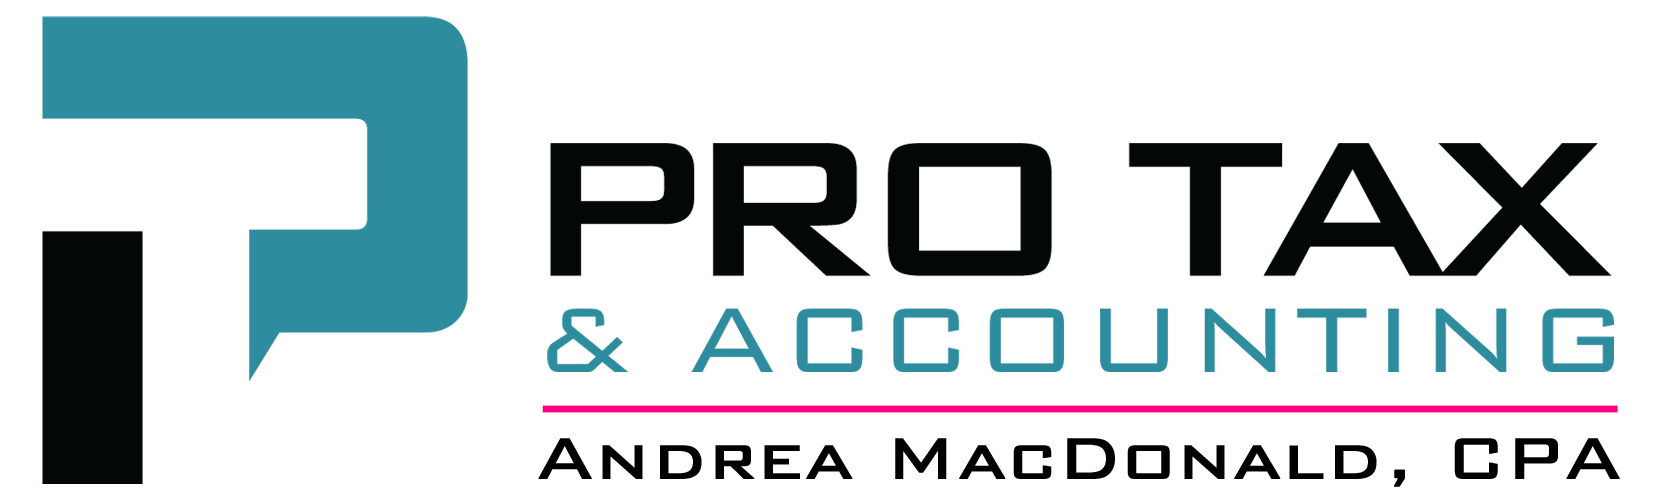 Pro Tax & Accounting, LLC logo in teal, black and pink